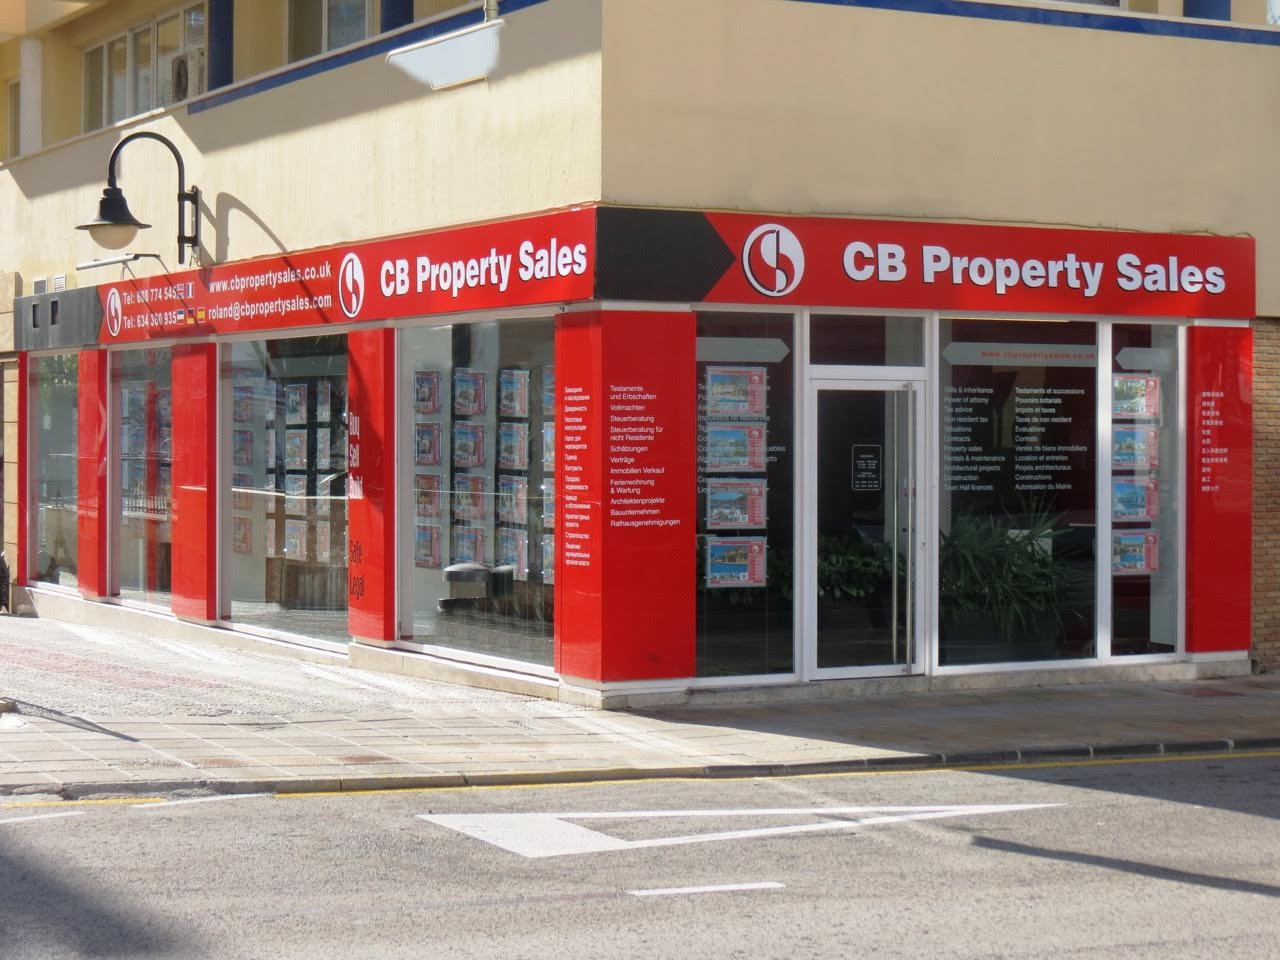 CB Property Sales Moraira